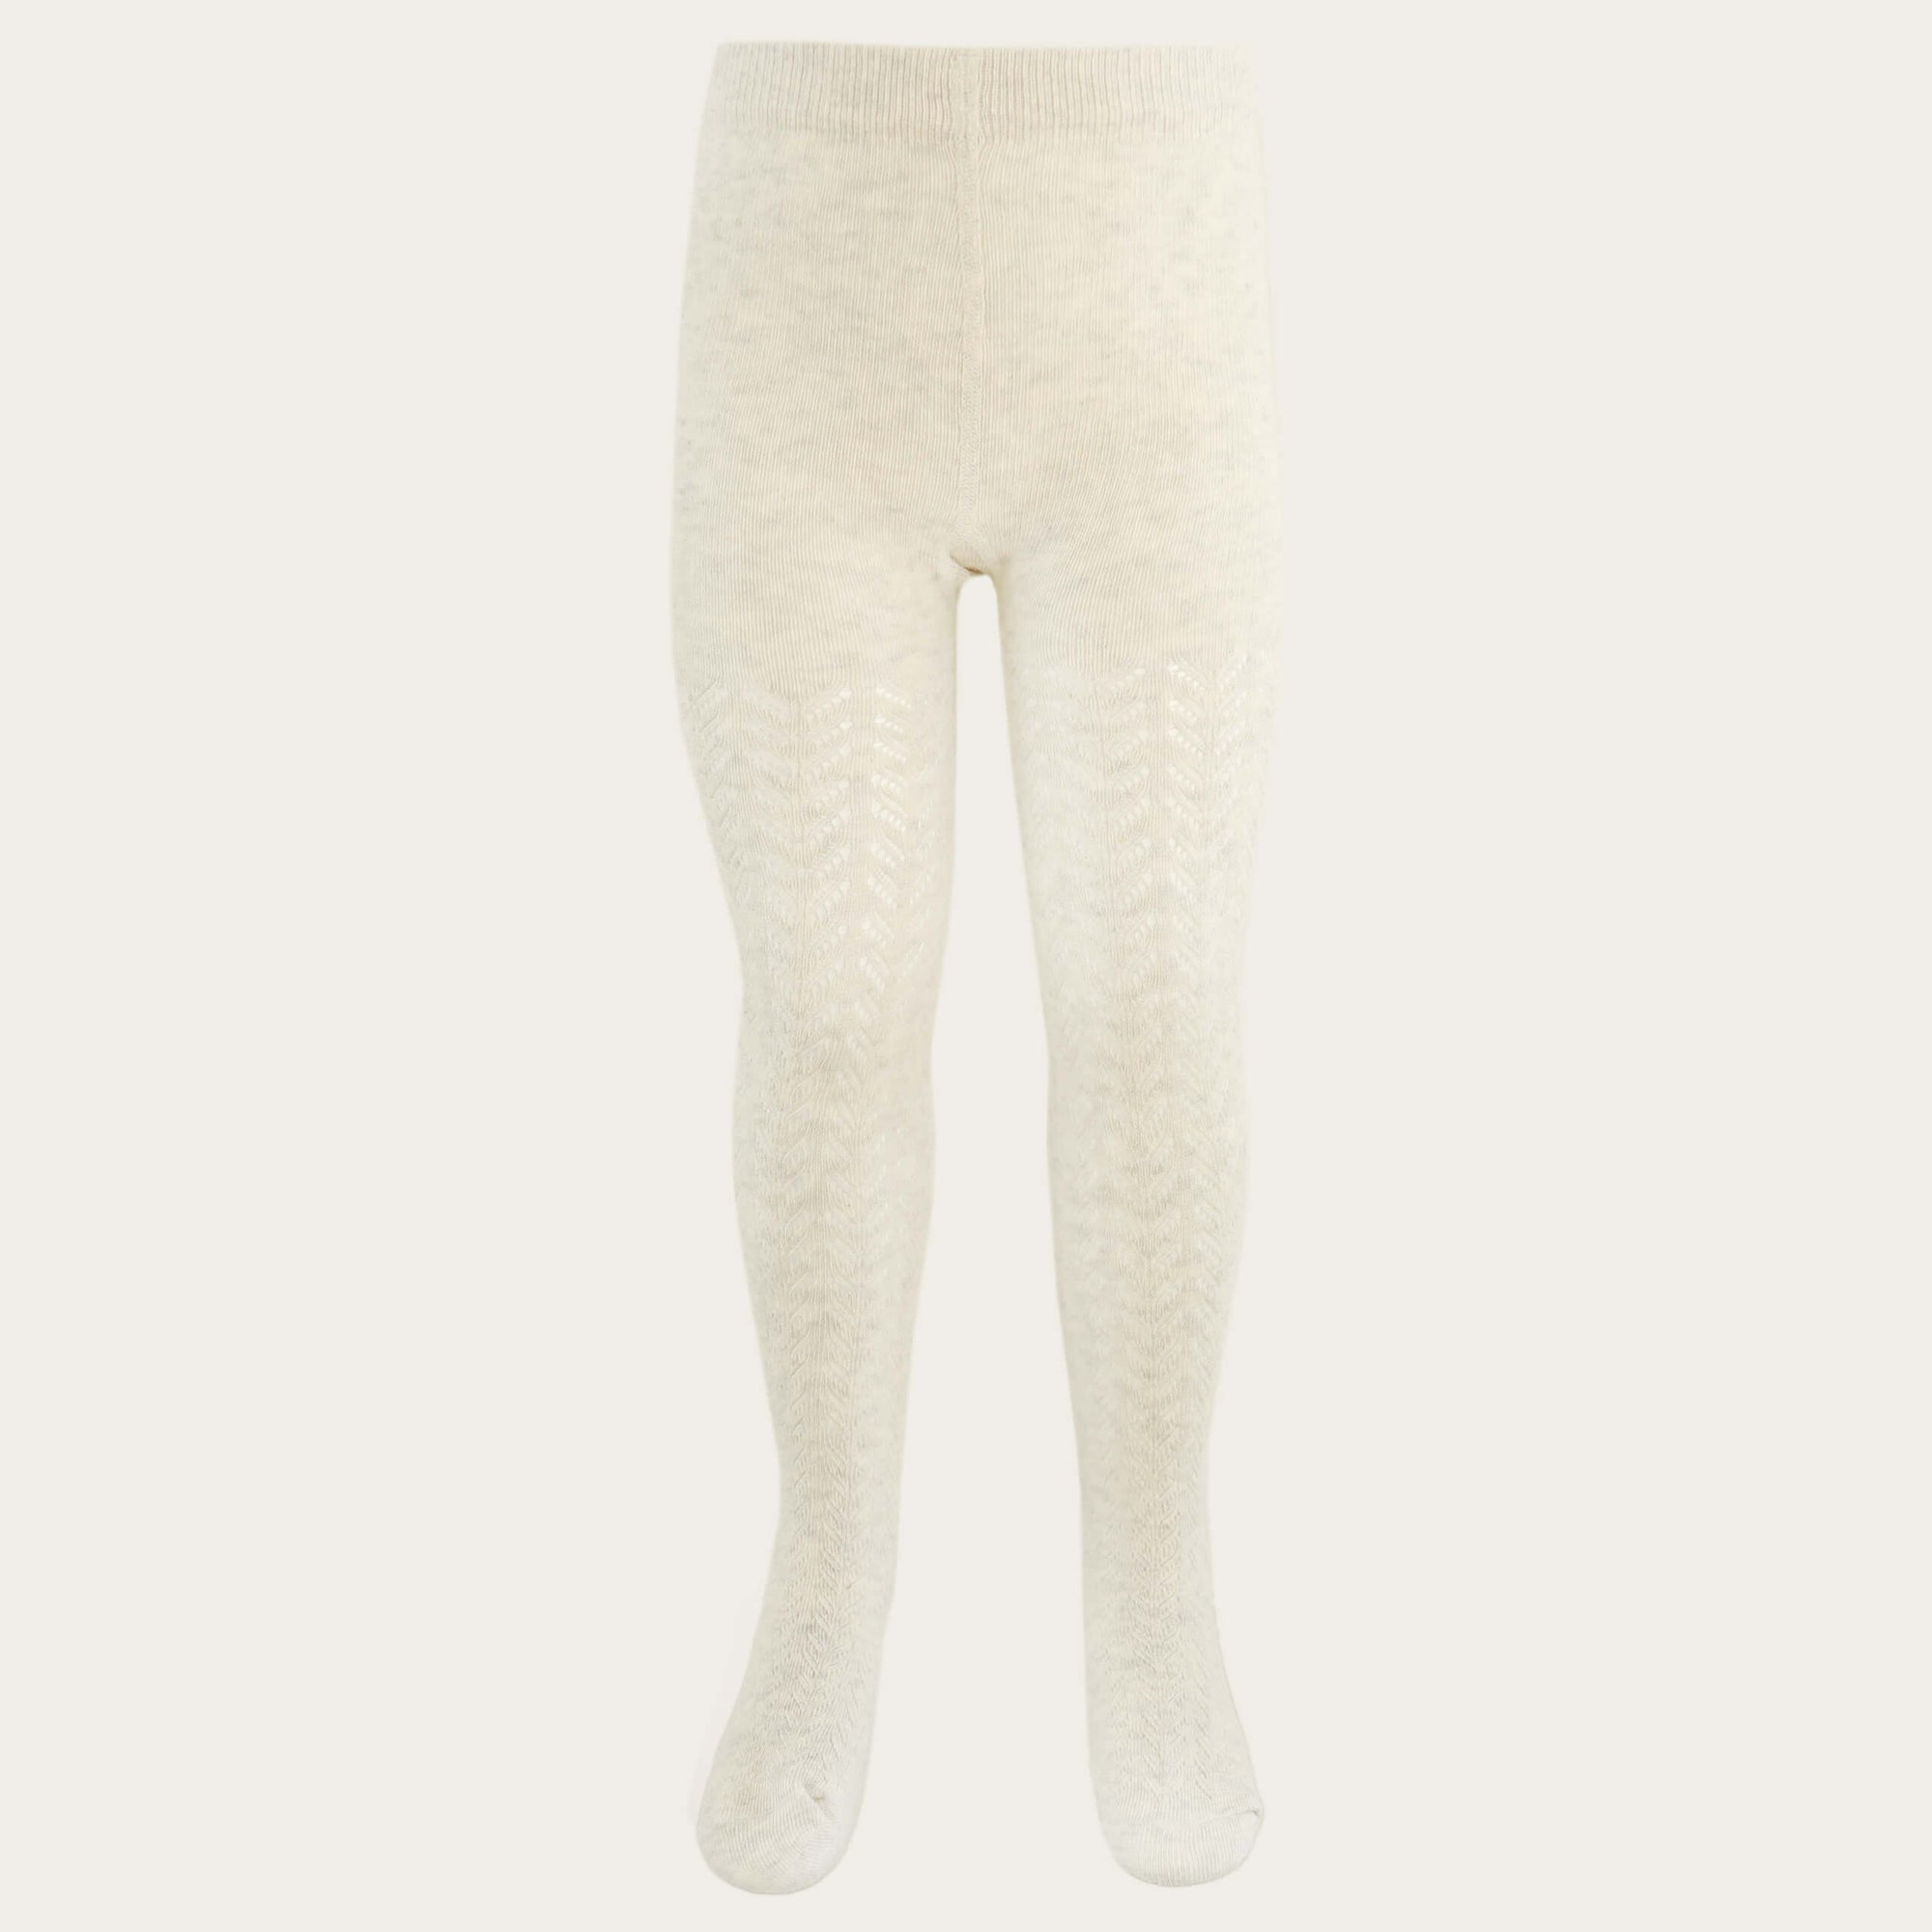 Jamie Kay Sophie Tights Oatmeal | Tiny People